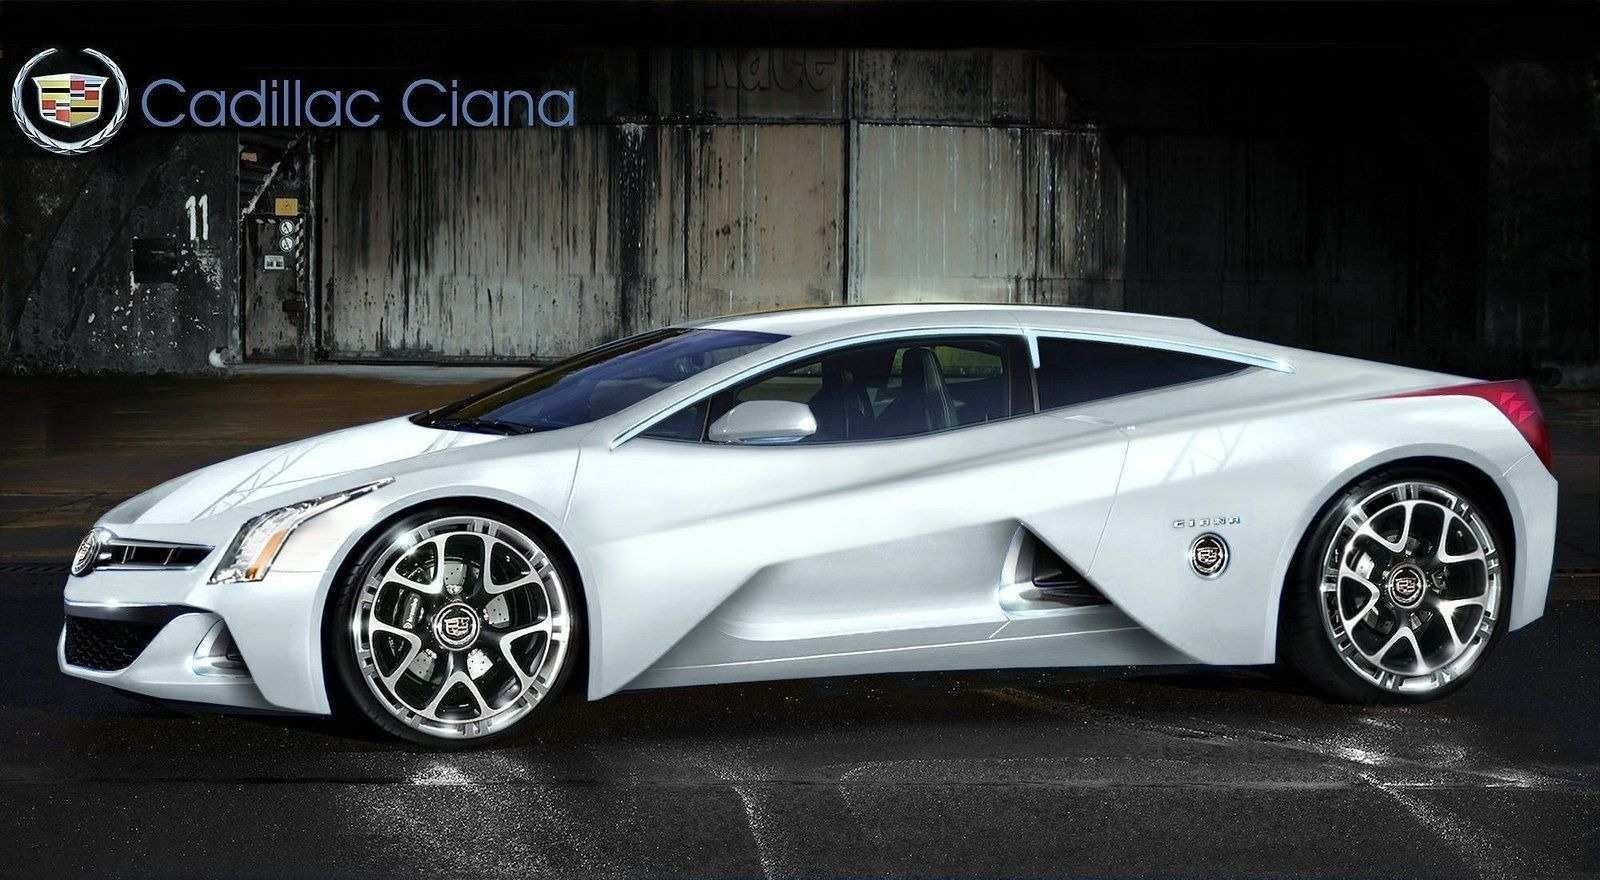 36 The Best 2020 Cadillac Ciana Exterior And Interior